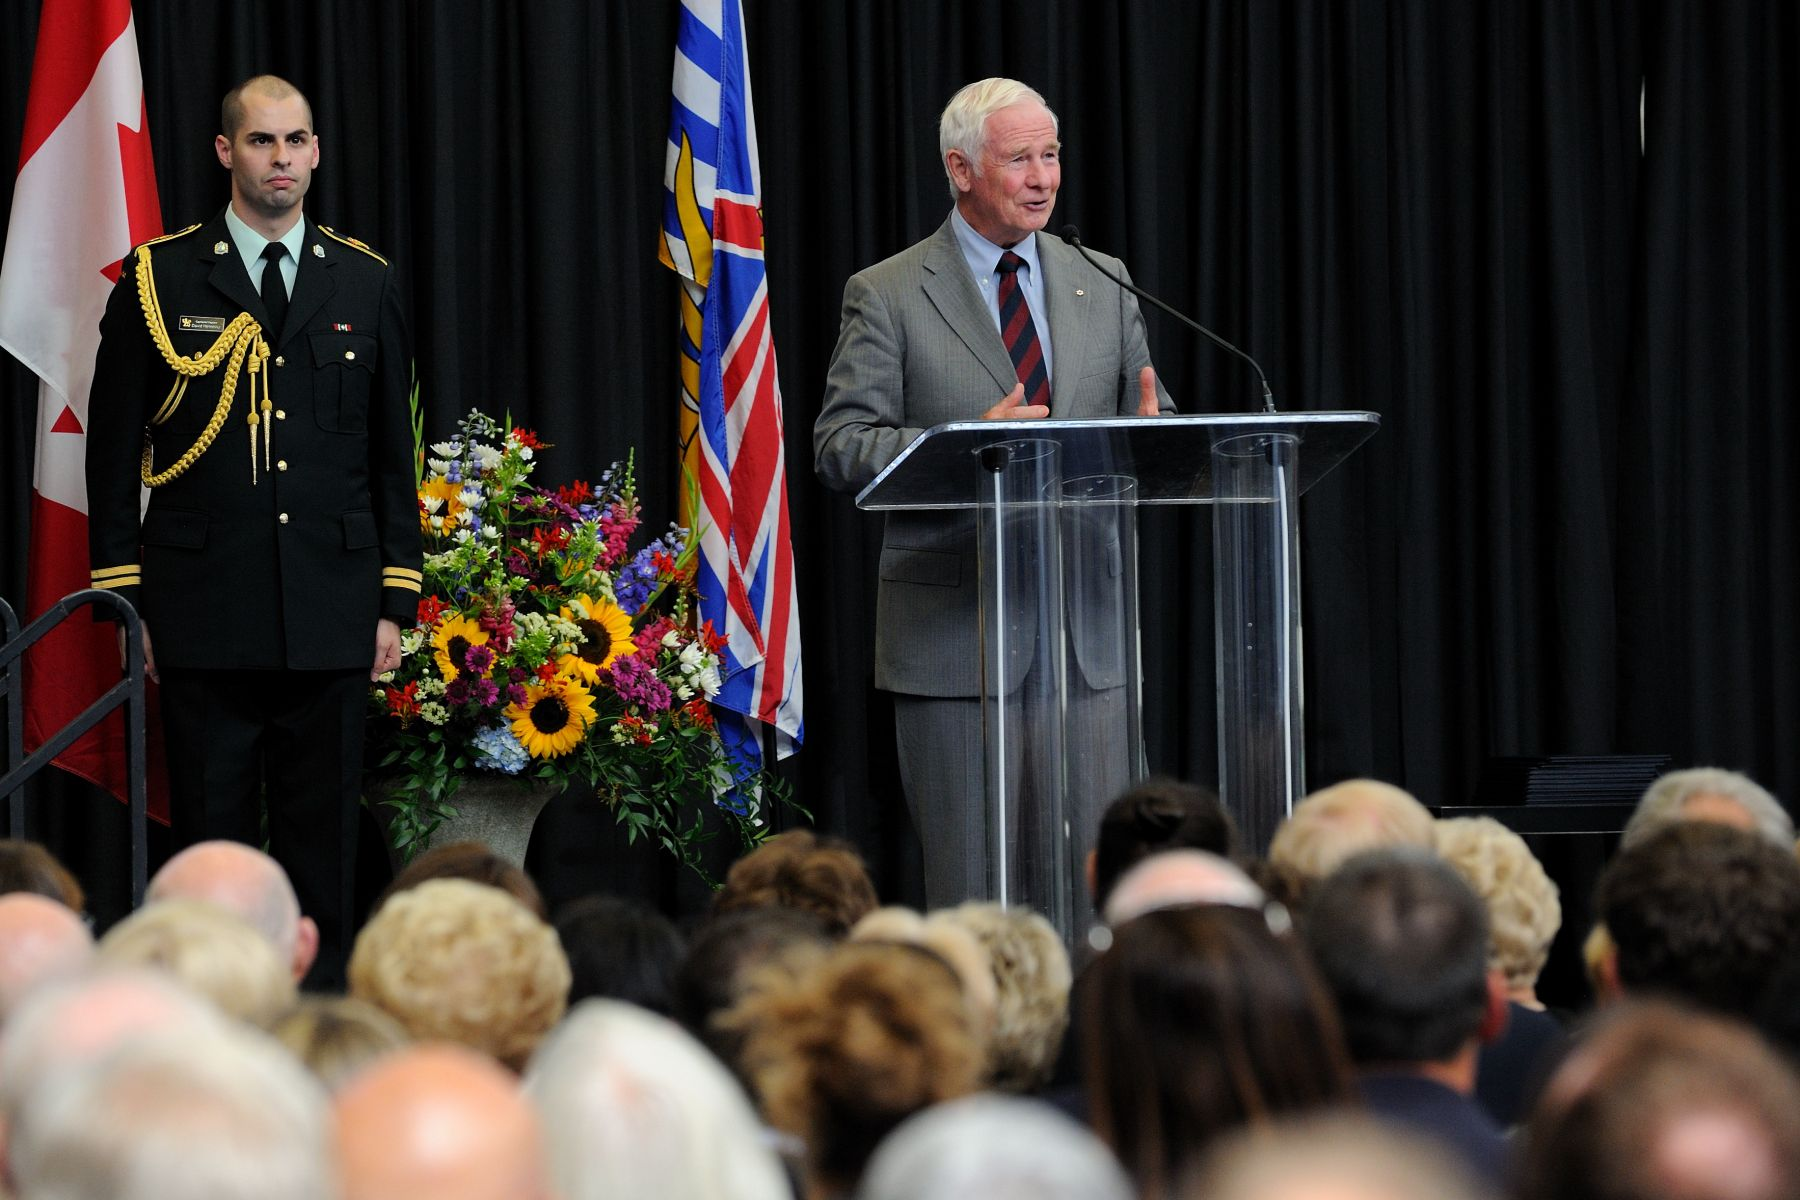 """The Victoria Community Foundation's new Smart and Caring program, The ABCs of Physical Literacy, is a great way to support children, to help them battle inactivity and gain confidence,"" said His Excellency. ""In turn, they might be inspired to help others throughout their lives, building on the kindness that they were shown early on. And who knows what they will think of to transform our communities in the future? And when this happens across the country, a better Canada is the result."""